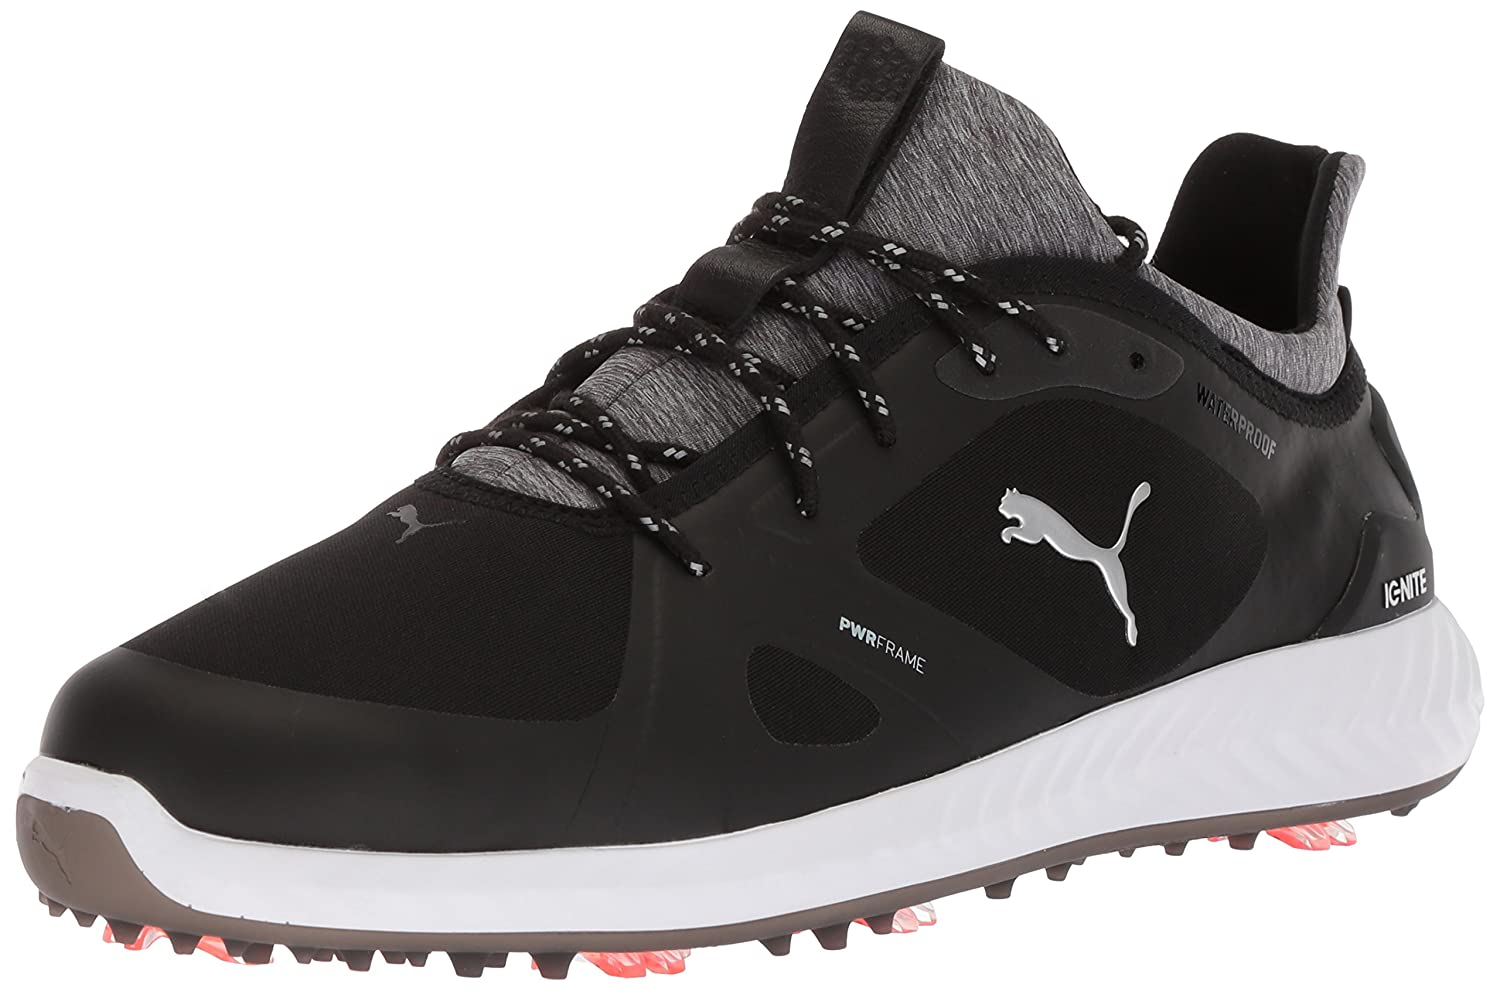 PUMA Men's Ignite Pwradapt Golf Shoe